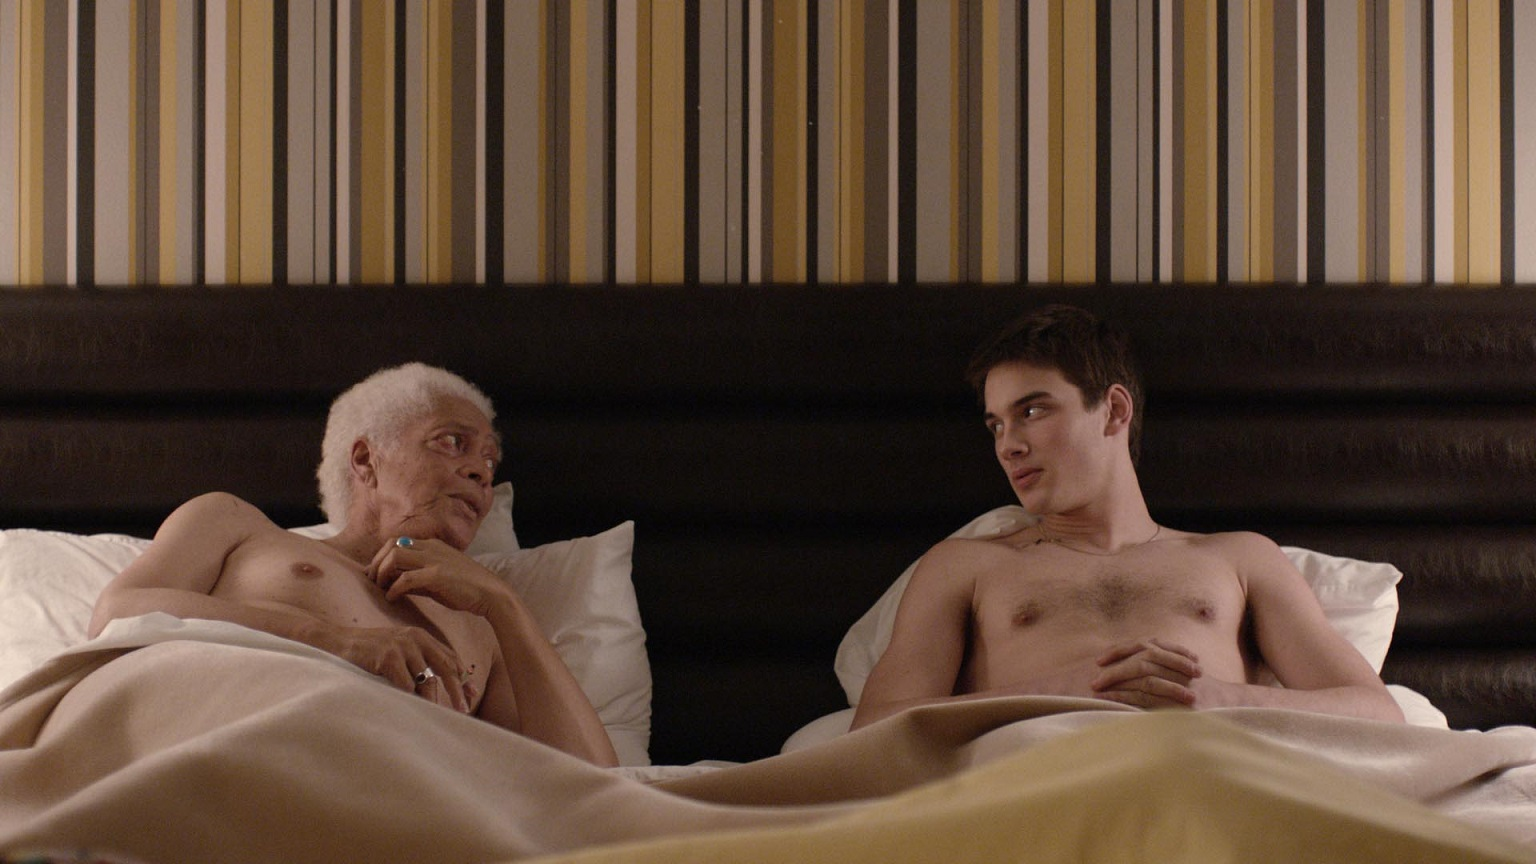 18_GERONTOPHILIA_Filmoption©2013_screengrab.jpg